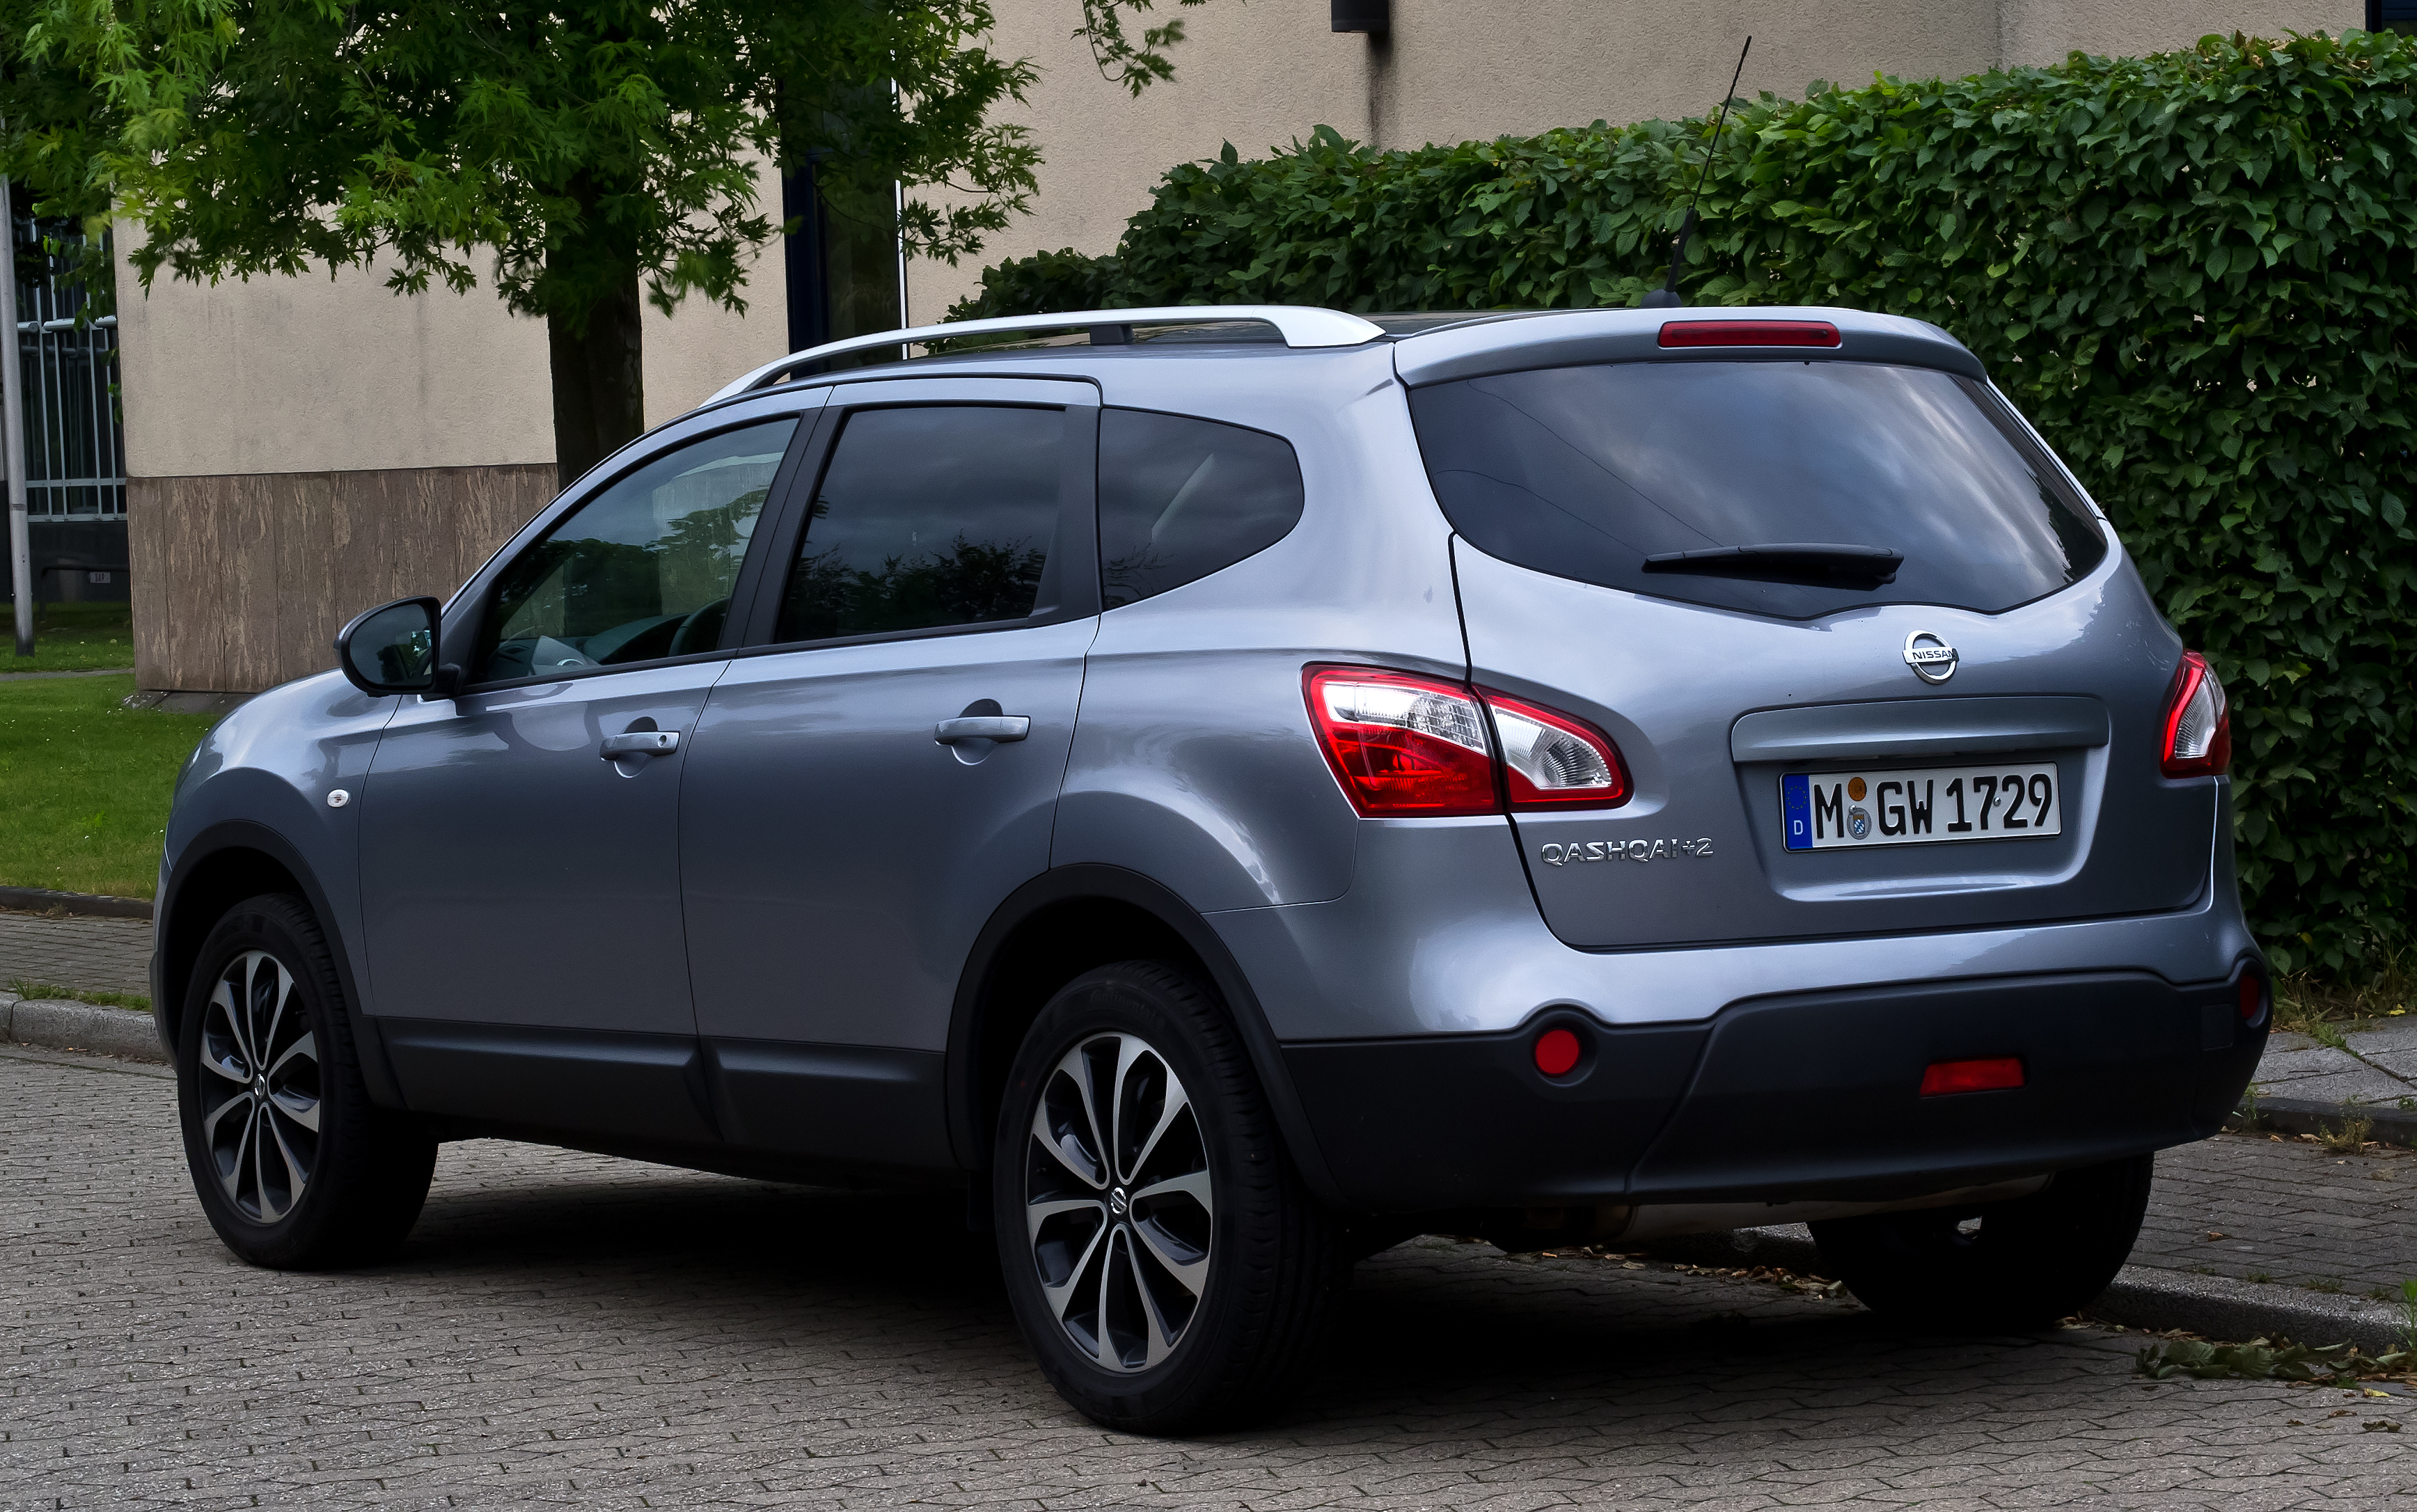 datei nissan qashqai 2 facelift heckansicht 8 juli 2012 wikipedia. Black Bedroom Furniture Sets. Home Design Ideas